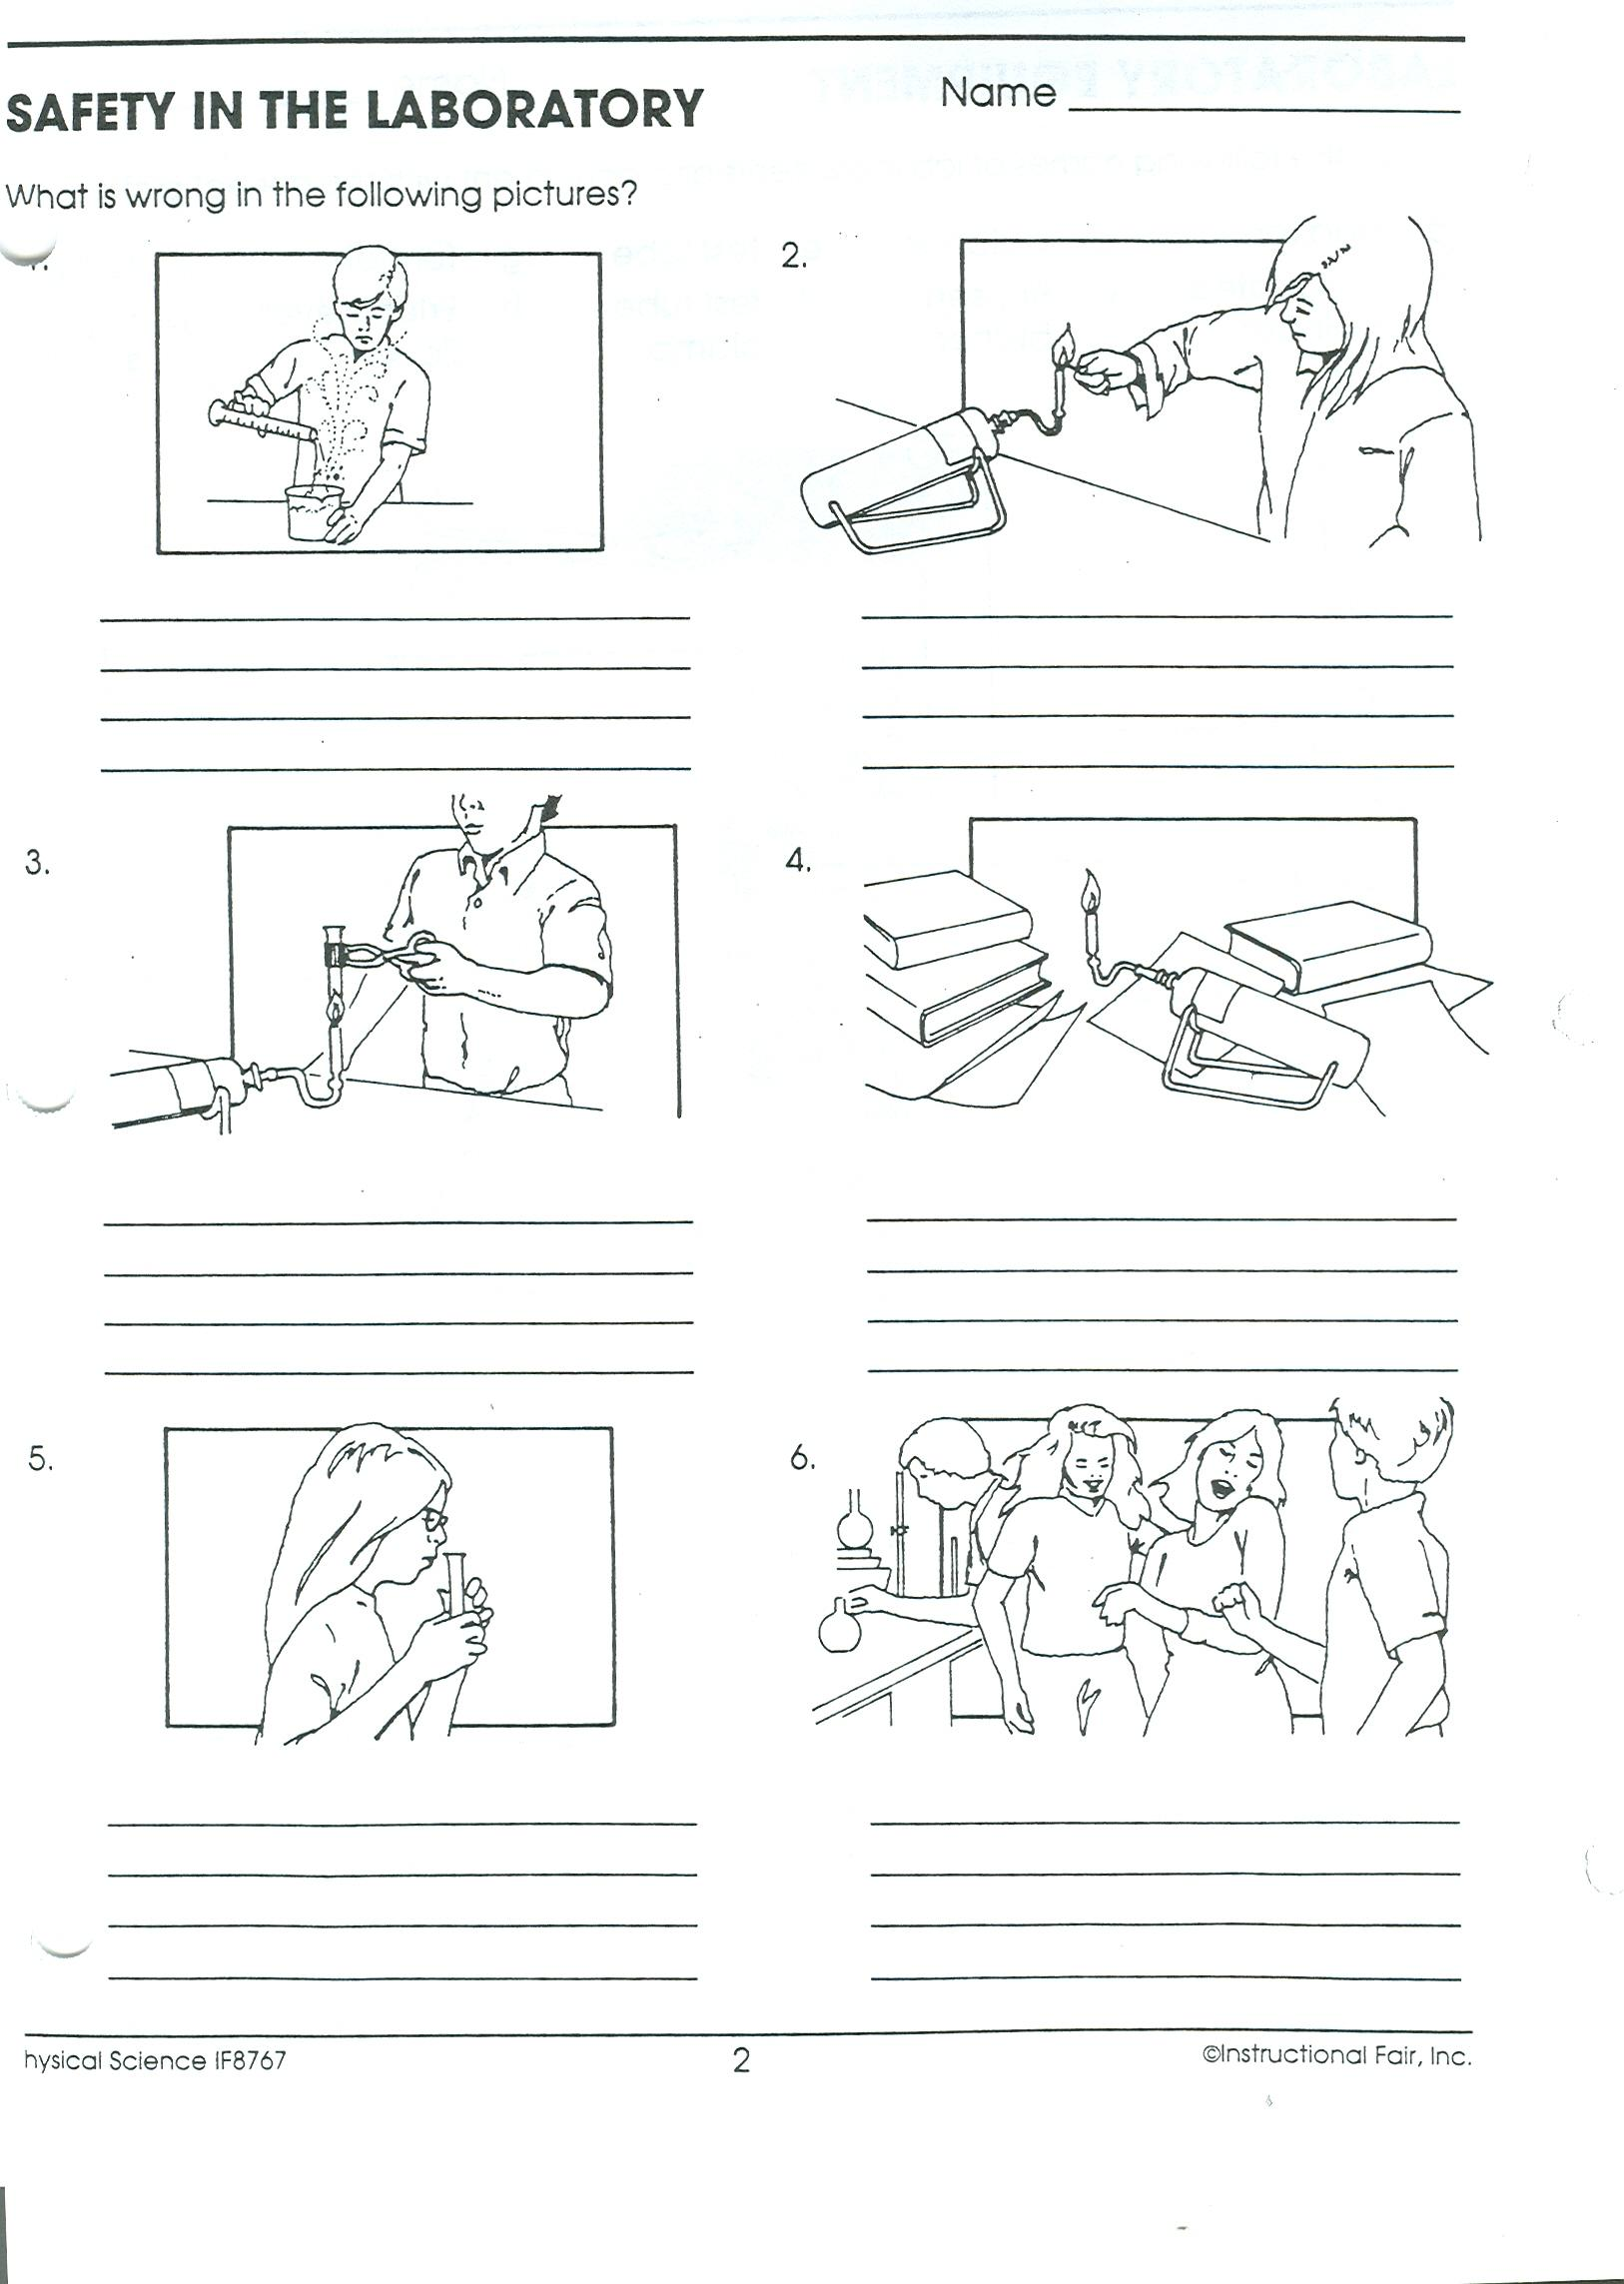 Printables Science Lab Safety Worksheet science class on line e mail the safety rules that are being violated in each picture to mr sheehy